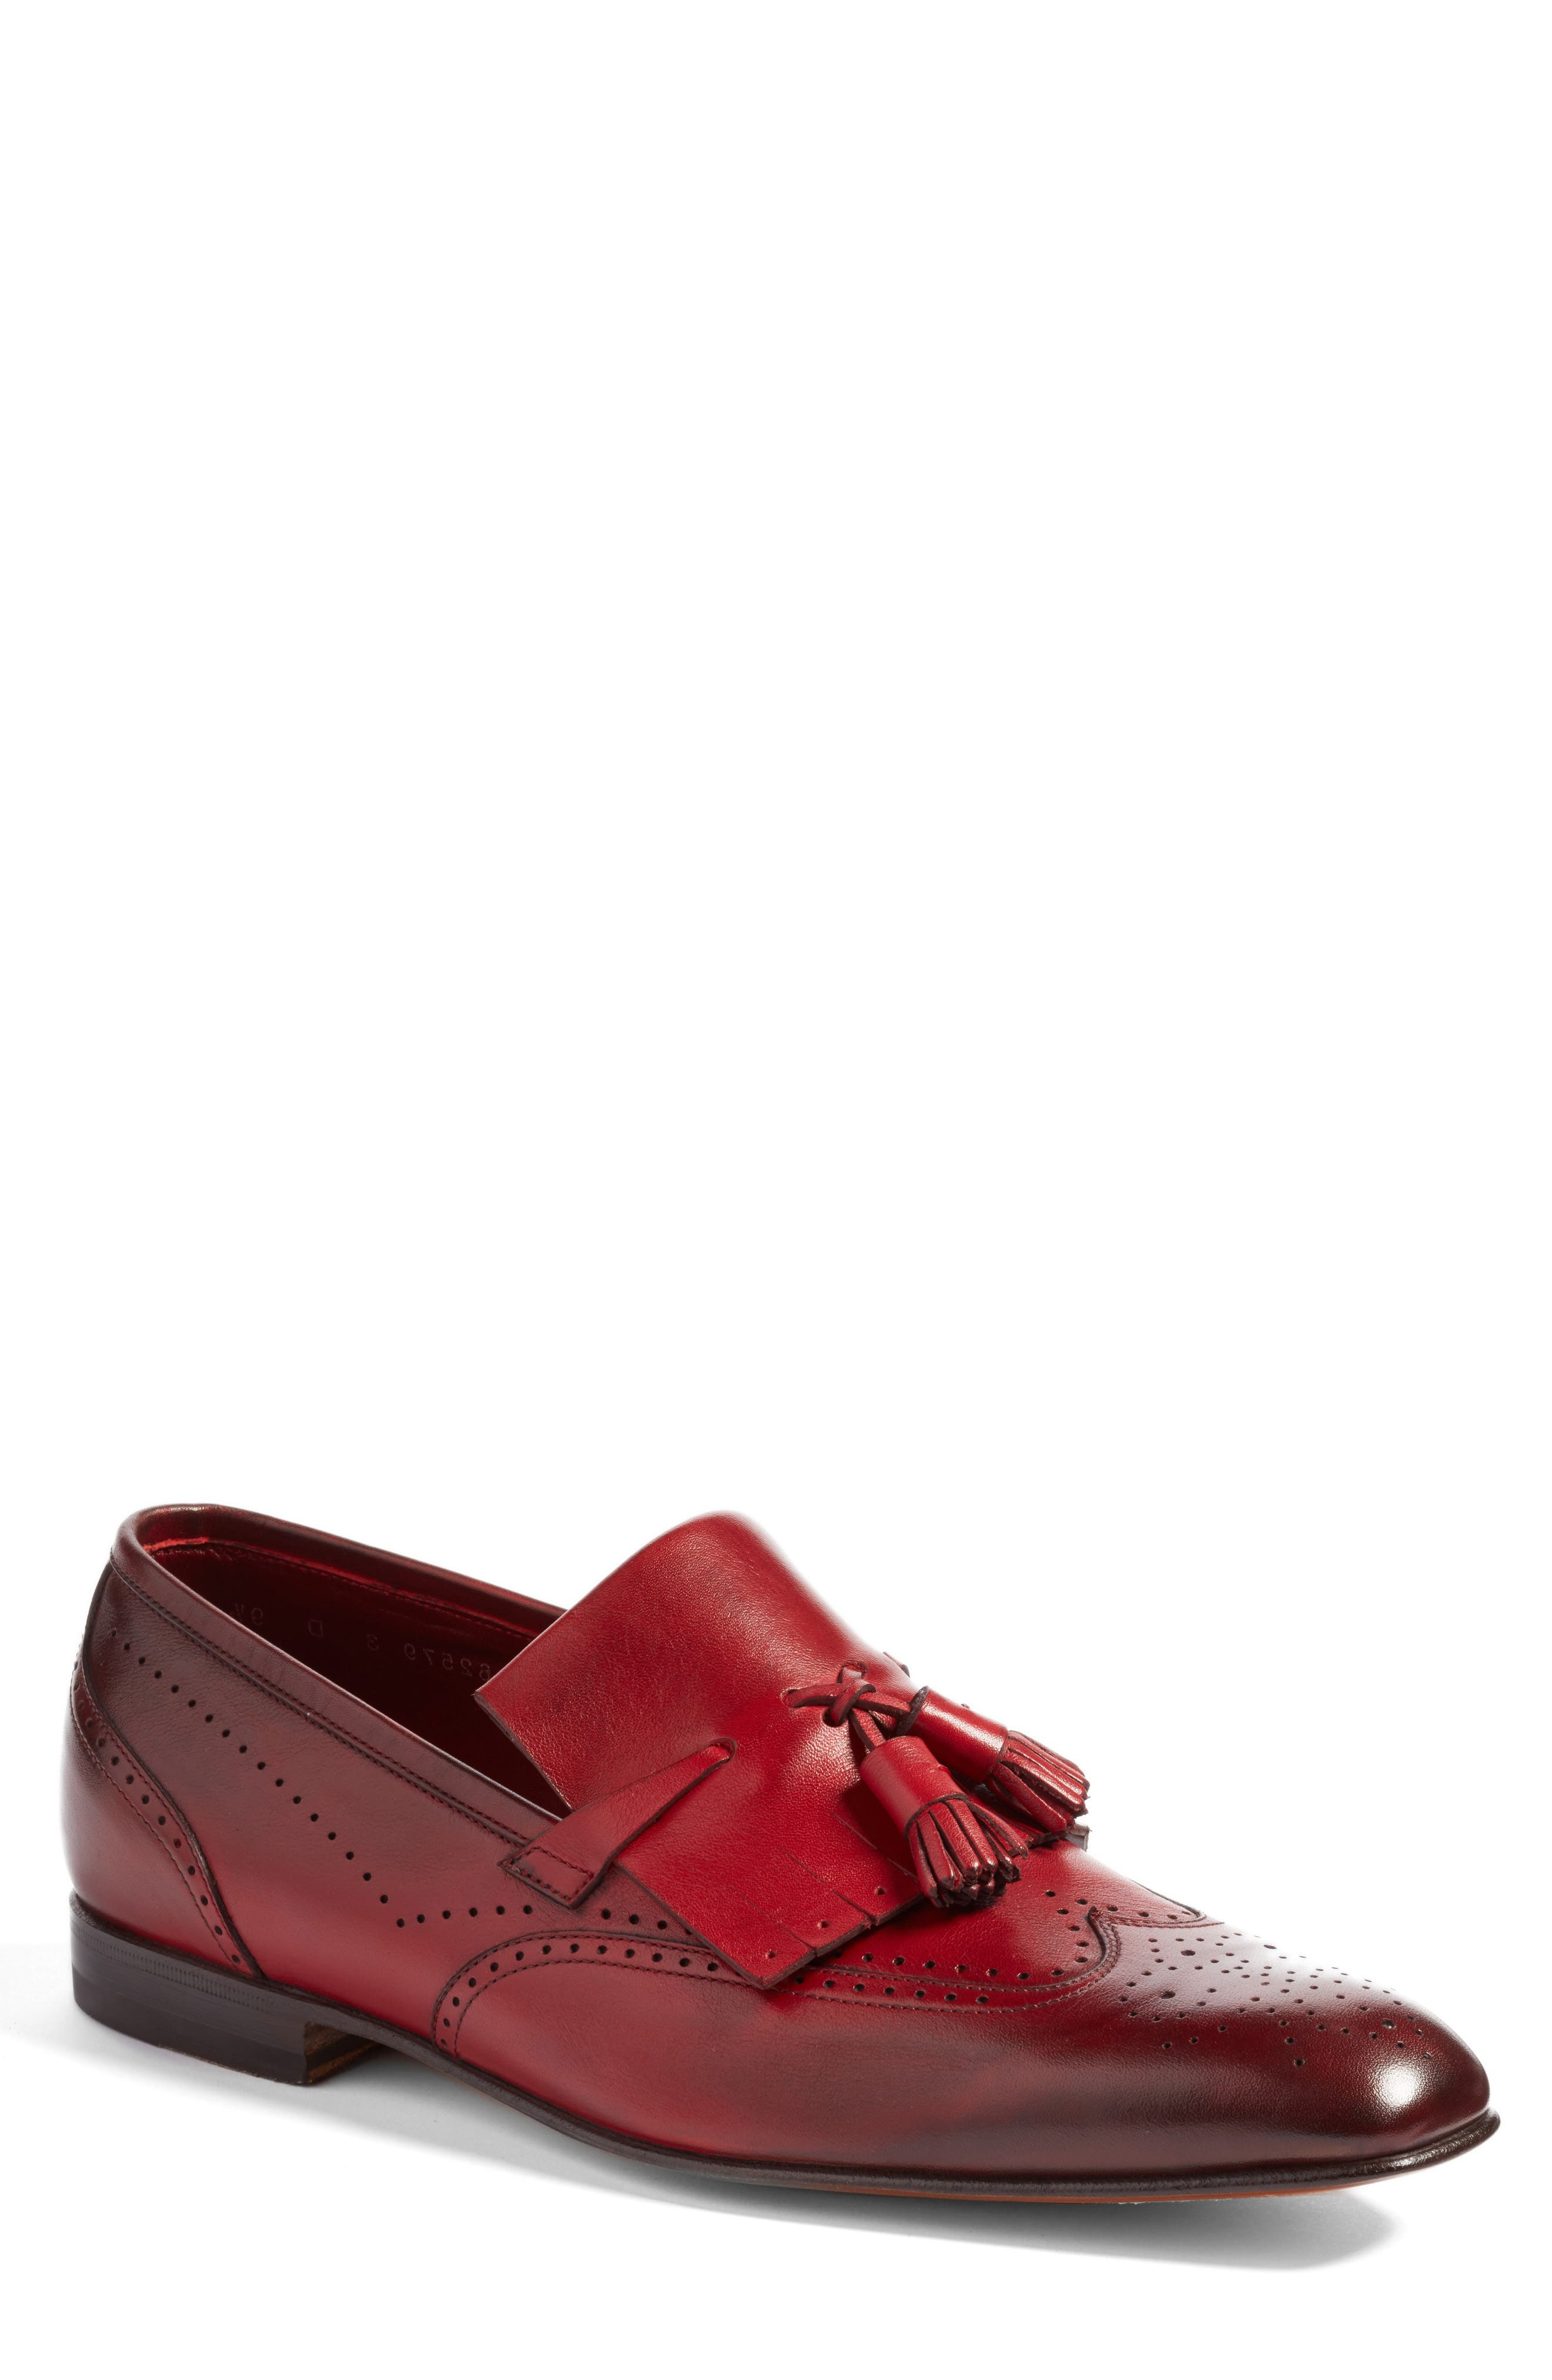 Floyd Tassel Wingtip Loafer,                             Main thumbnail 1, color,                             930